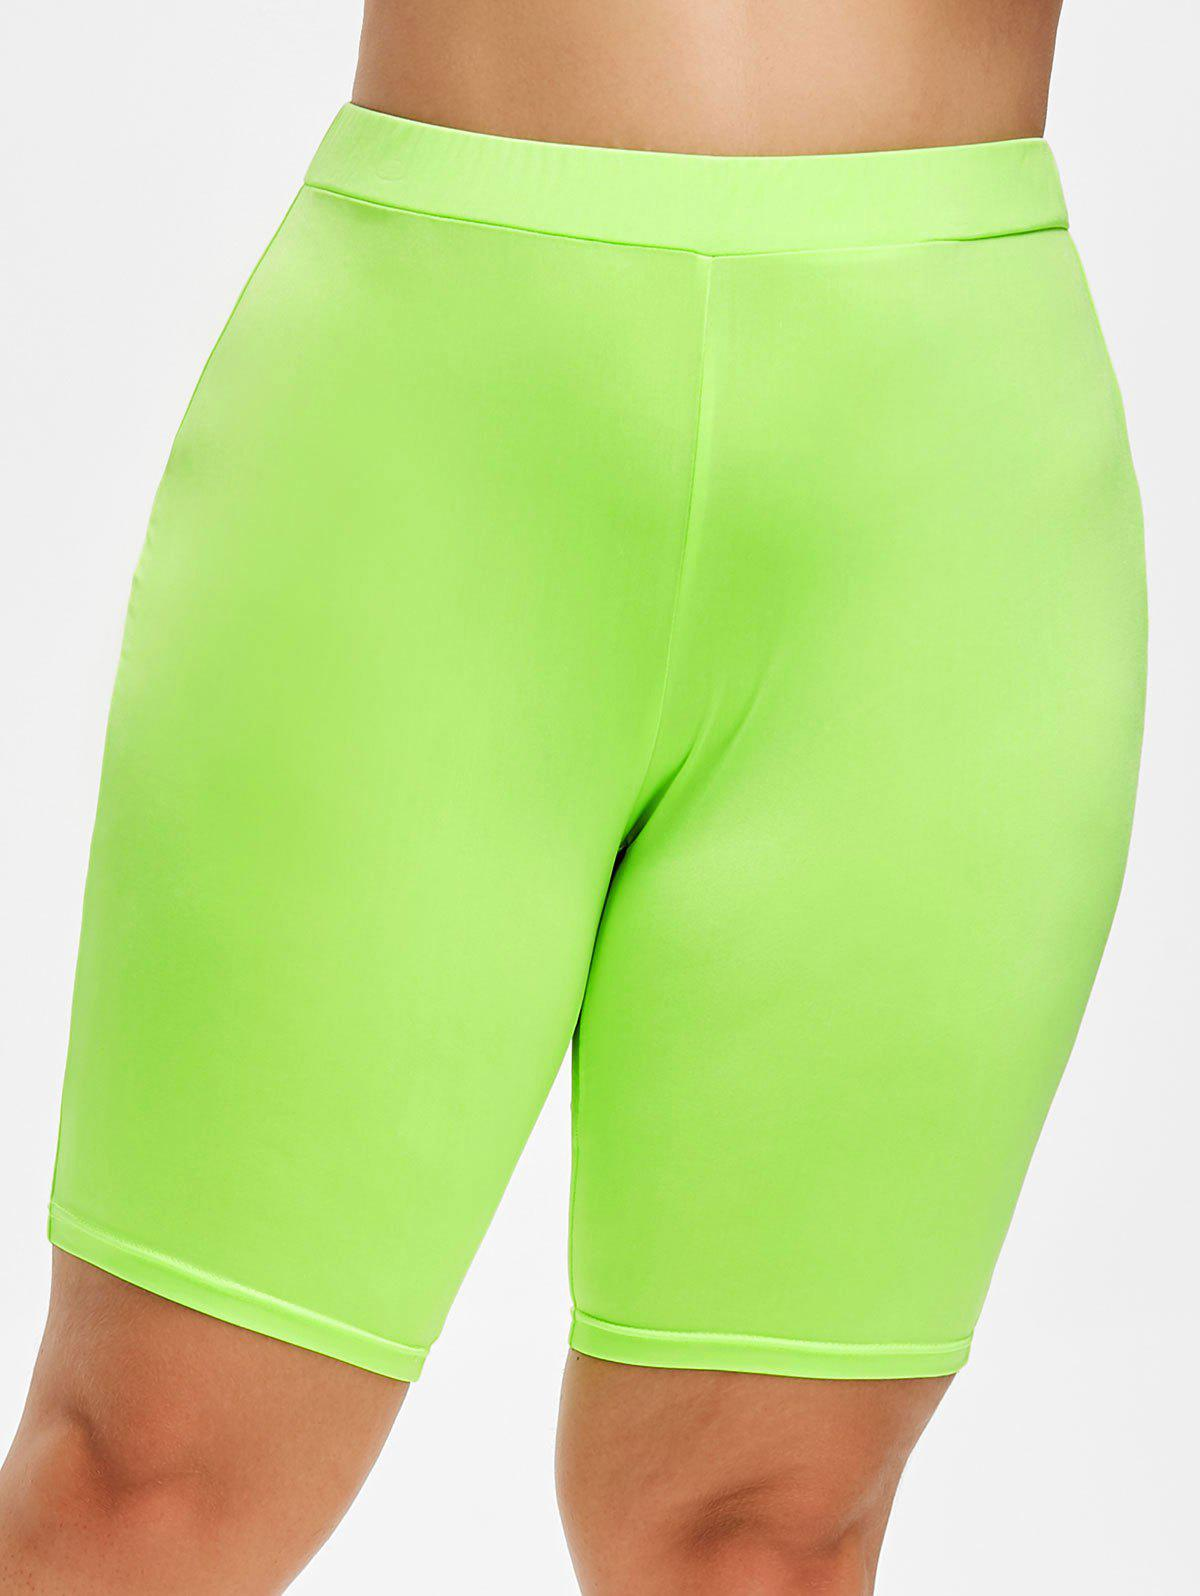 Fancy Rosegal Plus Size High Waist Lime Shorts